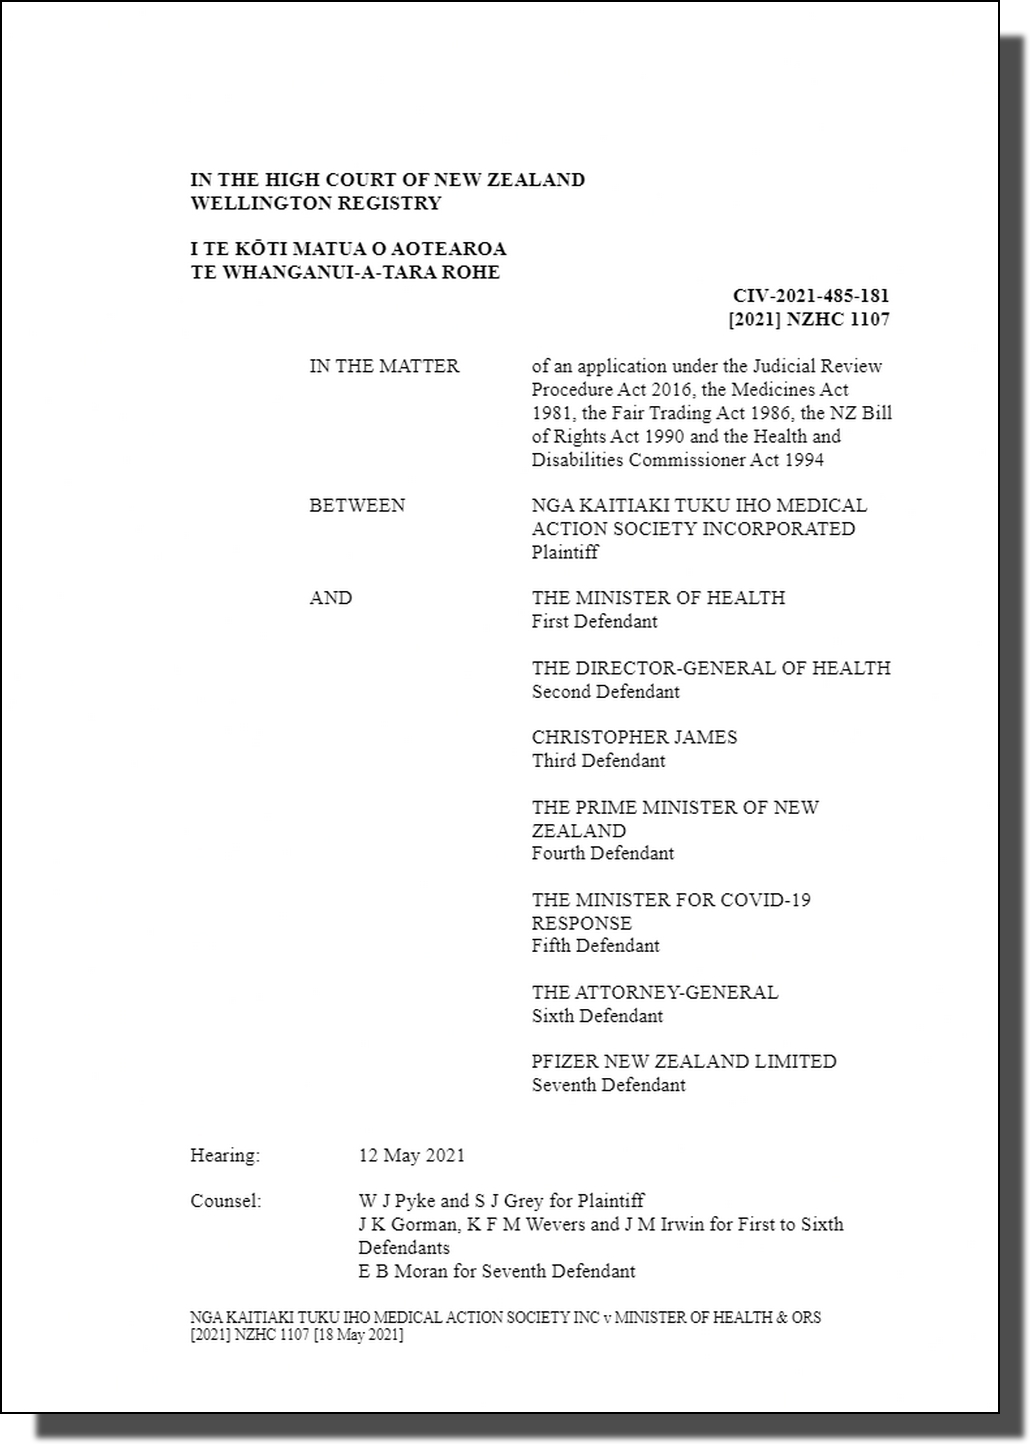 Nga Kaitiaki Tuku Ihu Medical Action Society Incorporated v The Minister of Health (Court Decision 18th May 2021)